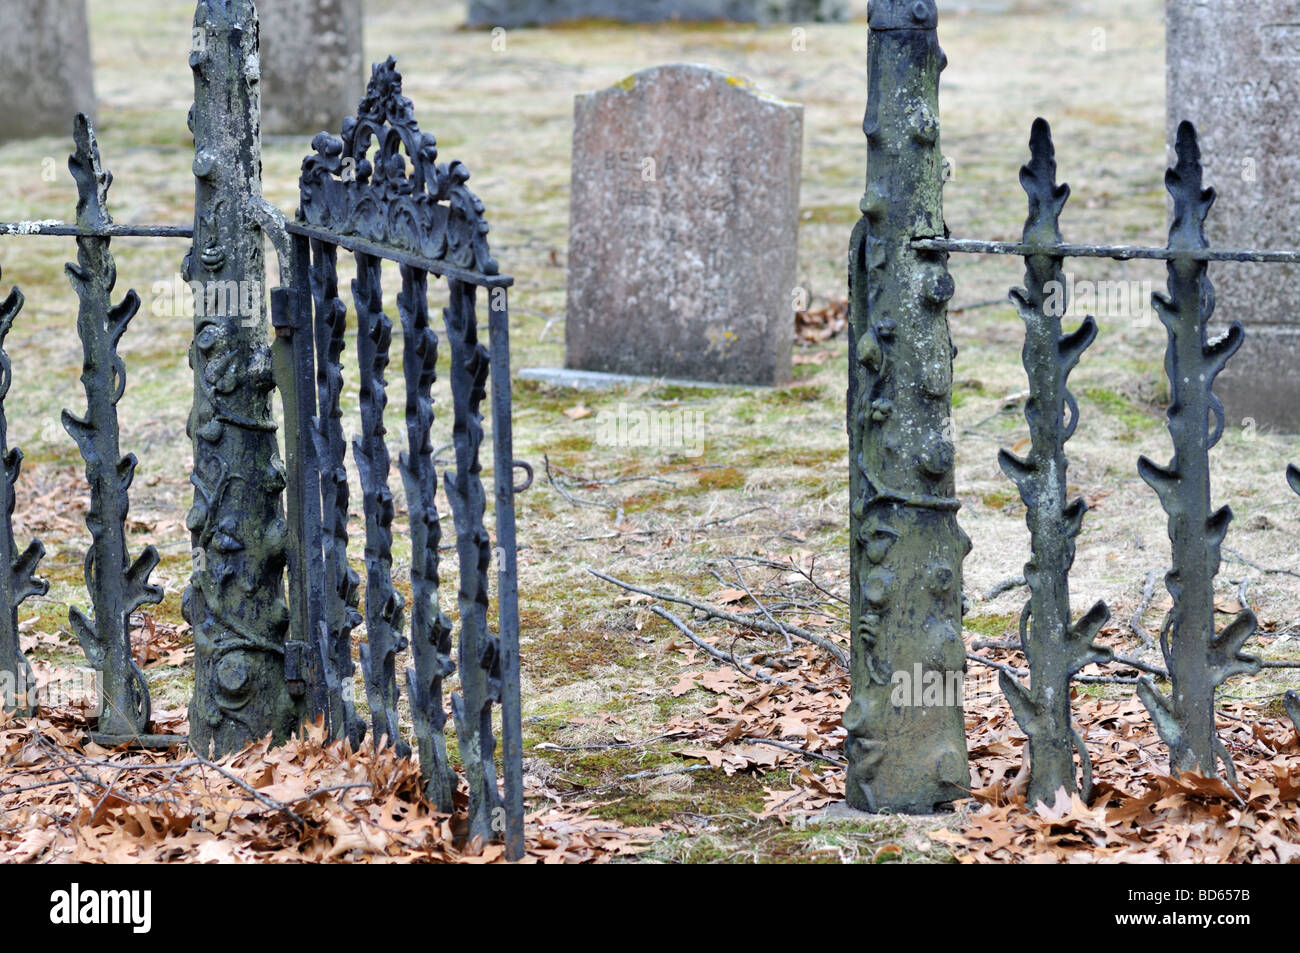 Cemetery plot with open wrought iron gate leading to grave plot and gravestones - Stock Image